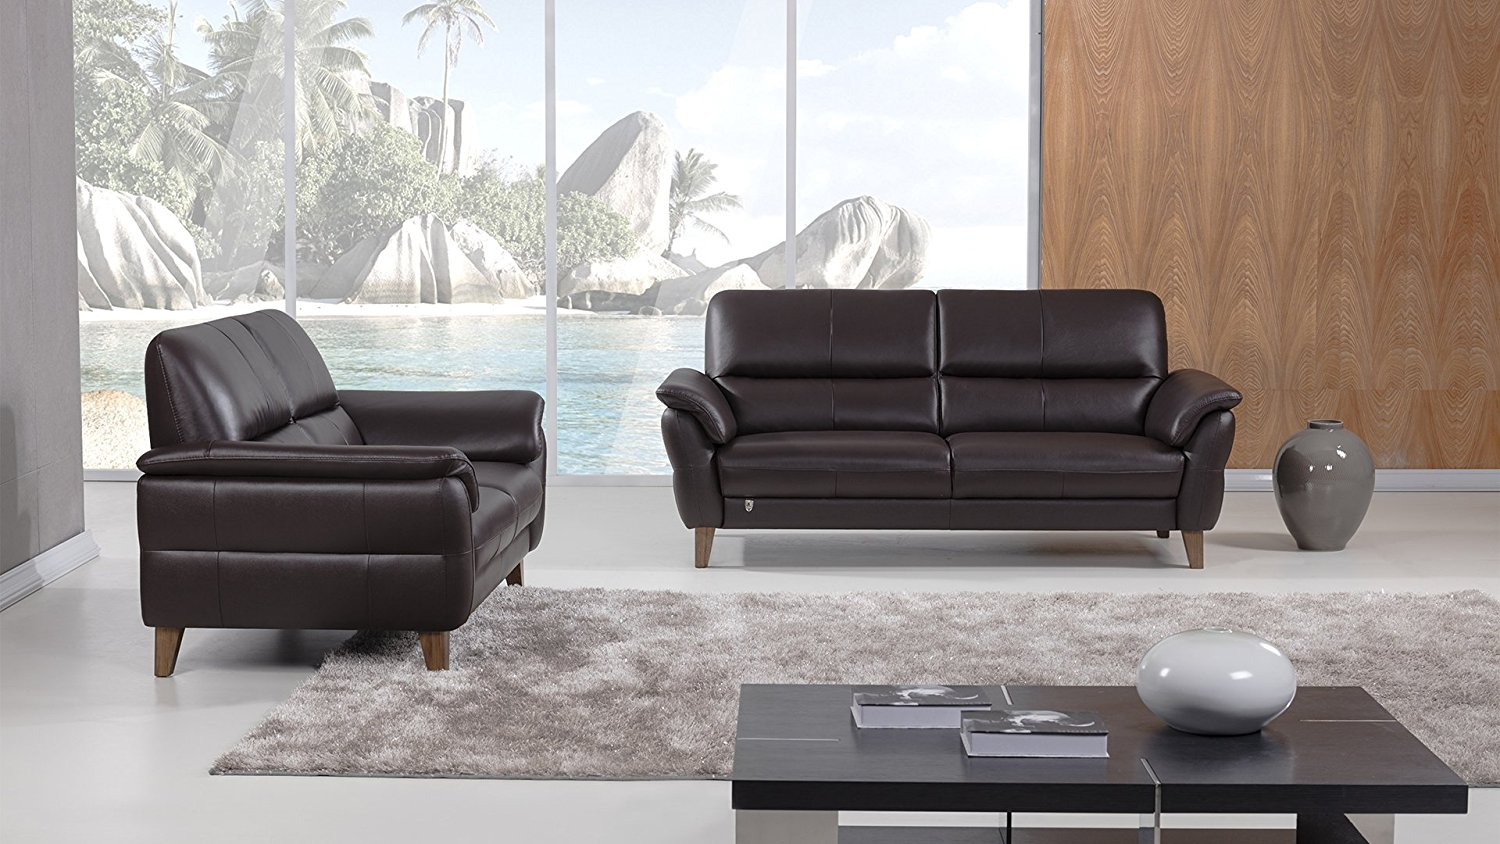 American Eagle Furniture 2 Piece King Collection Complete Living Room Top Grain Italian Leather Sofa Set, Dark Chocolate